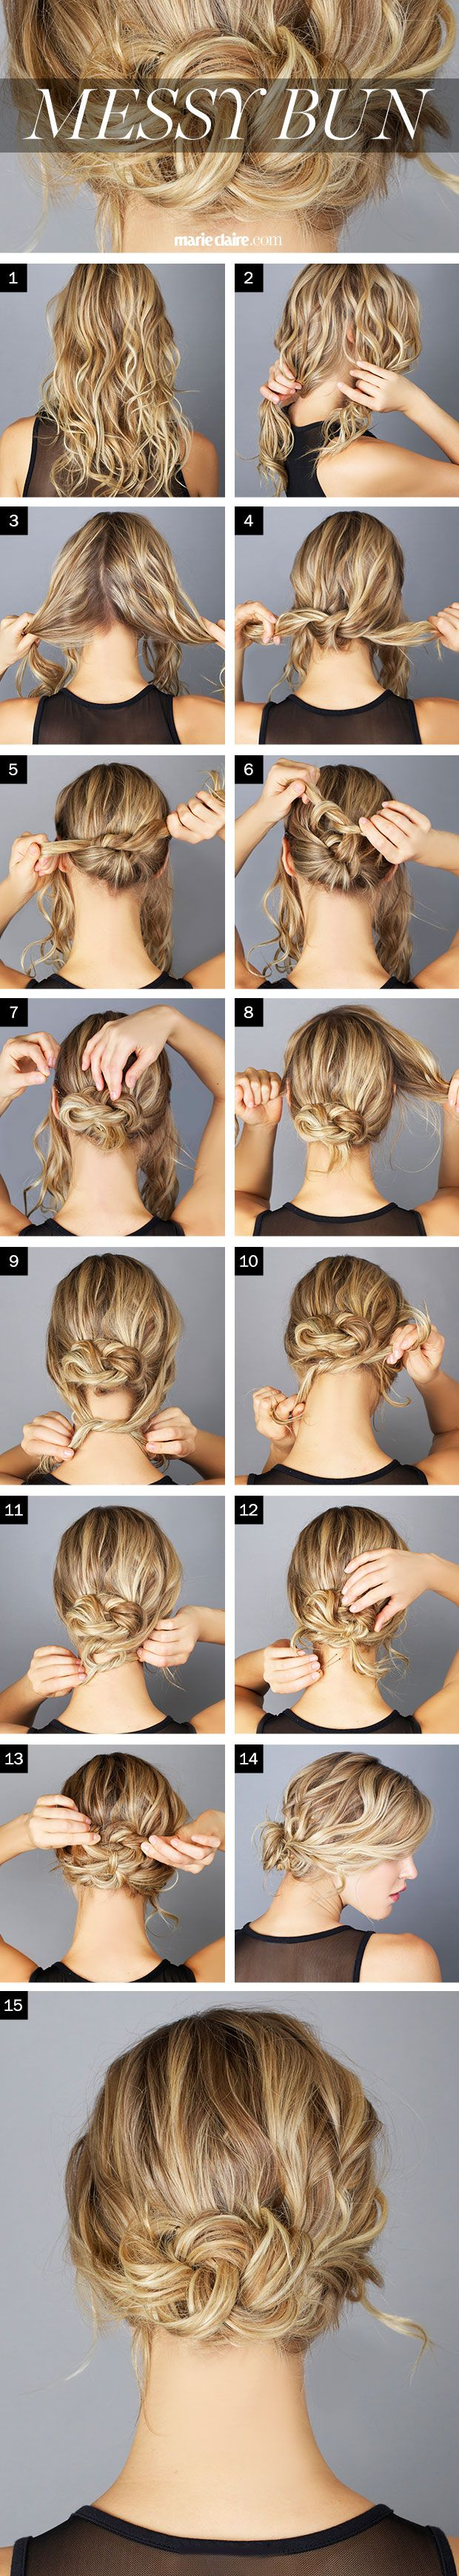 Hair How-To: The Messy Knot Bun